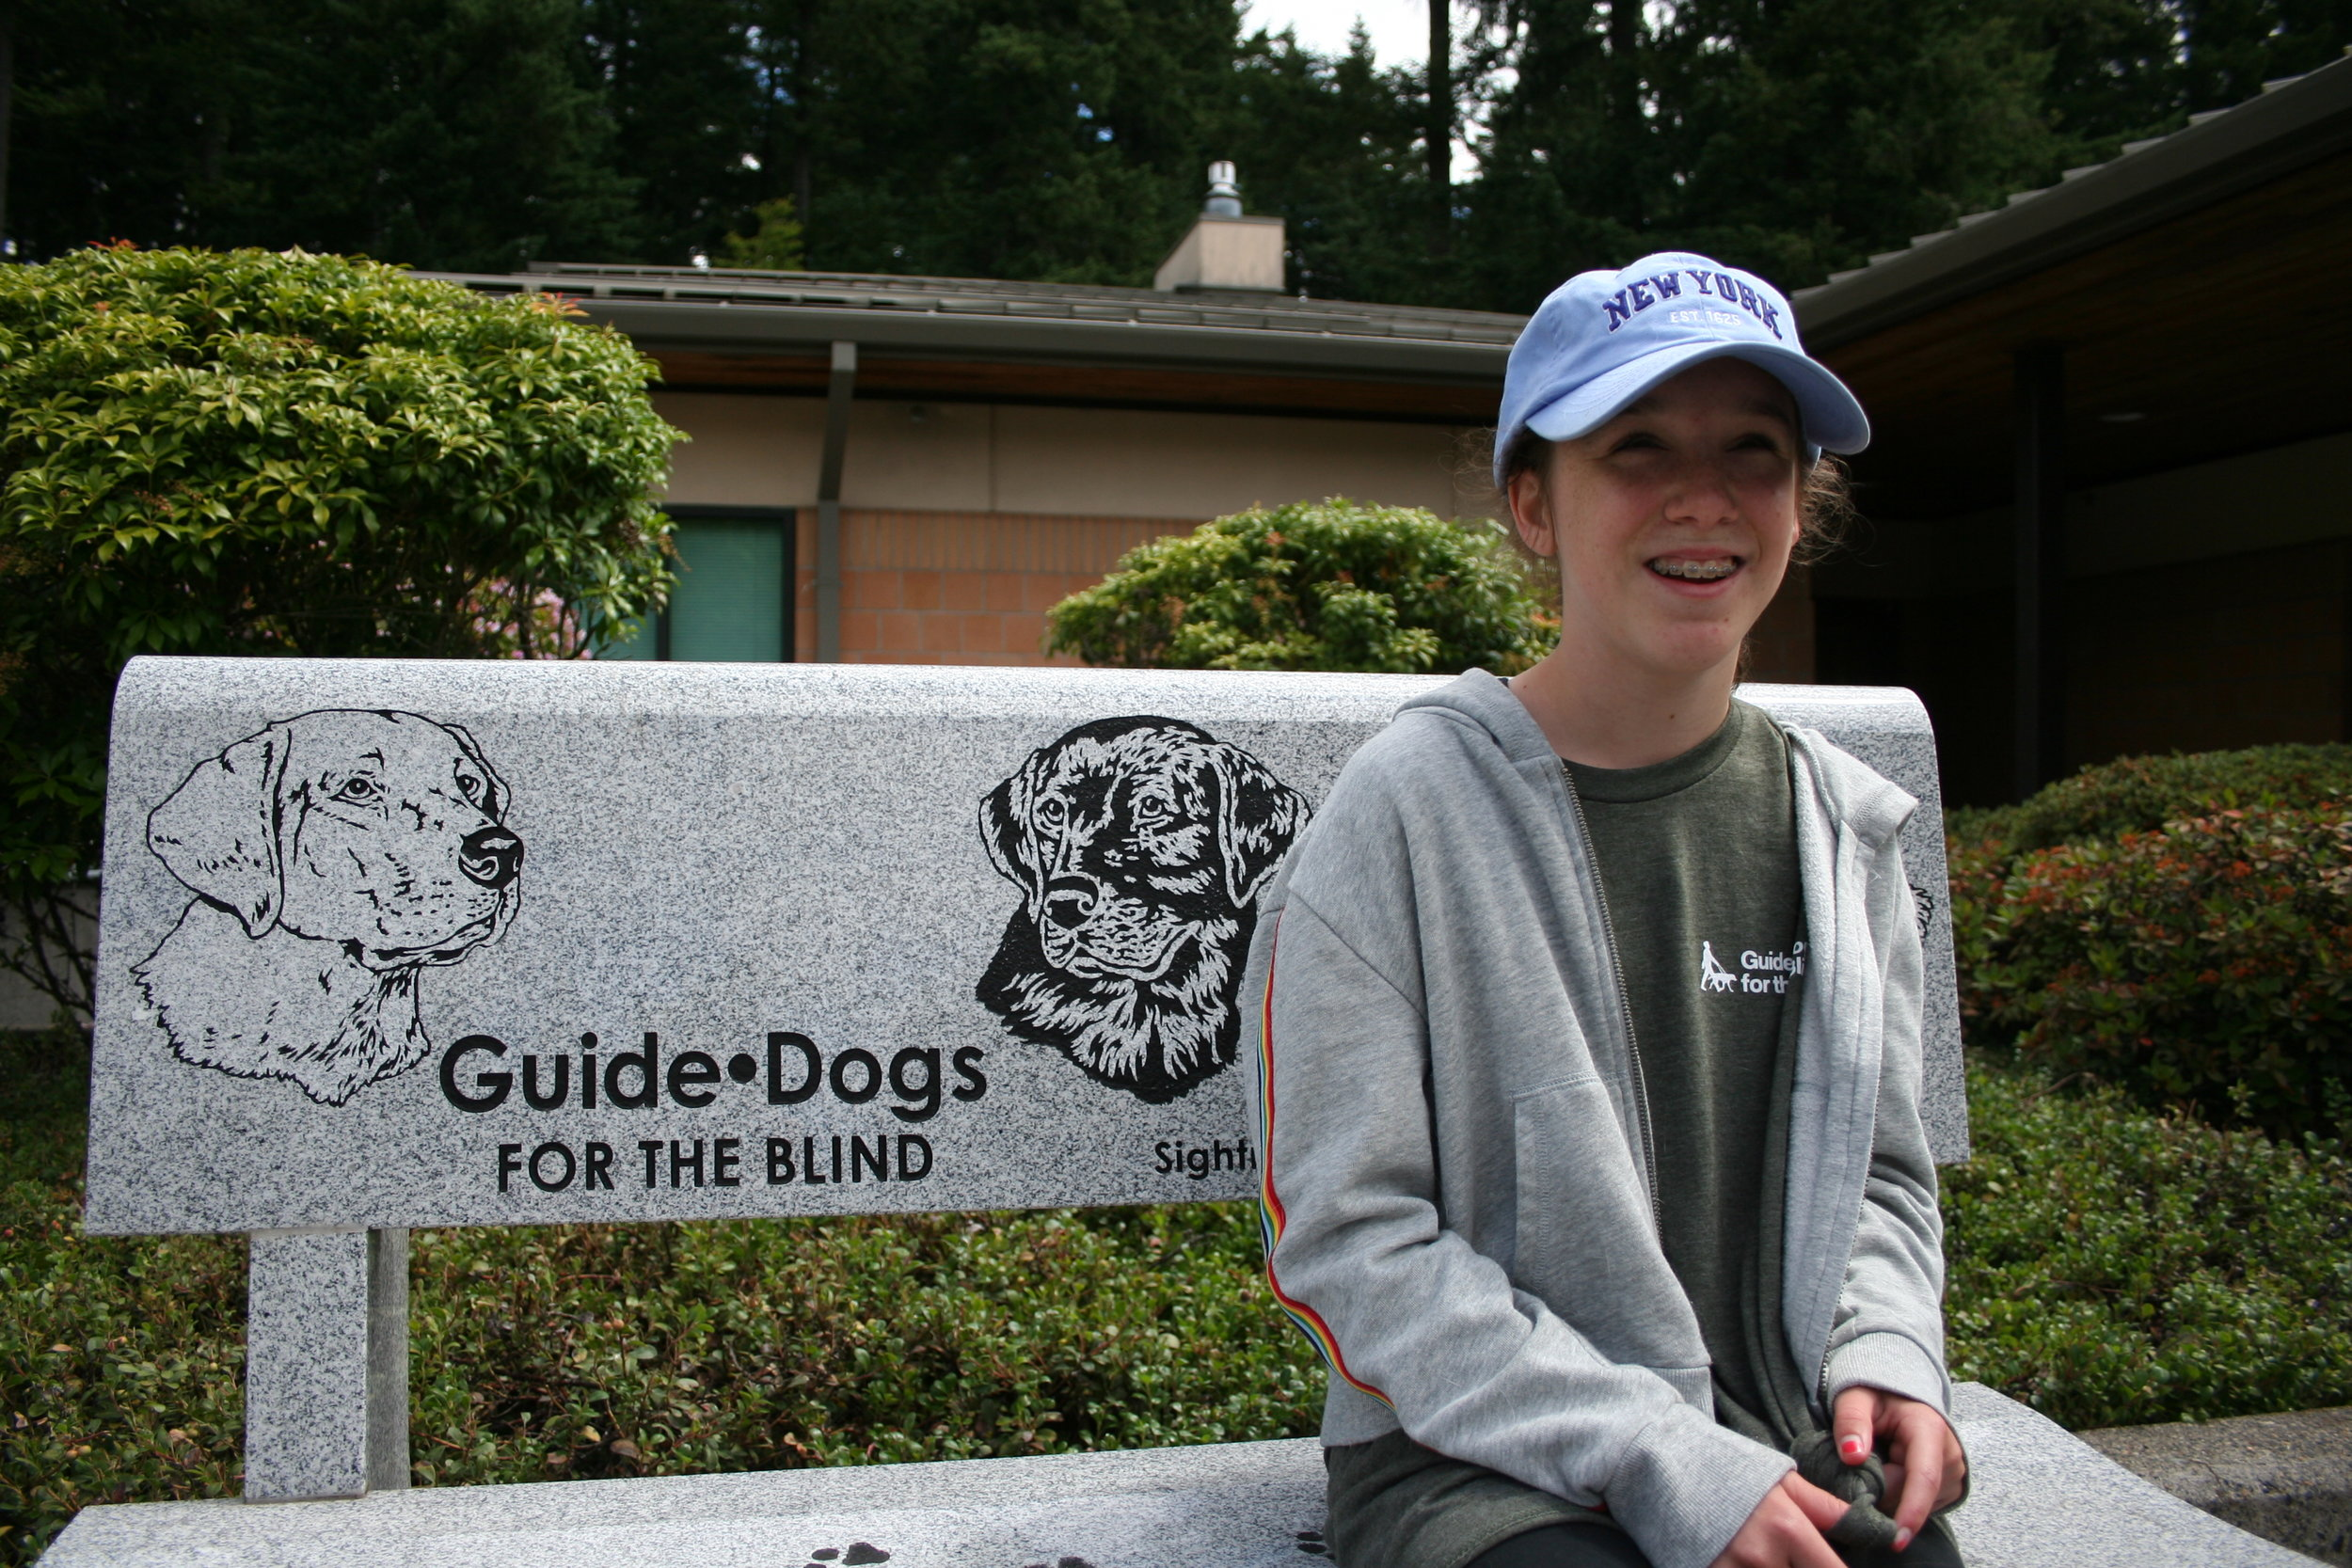 Maya Andrick sees a guide dog in her future.